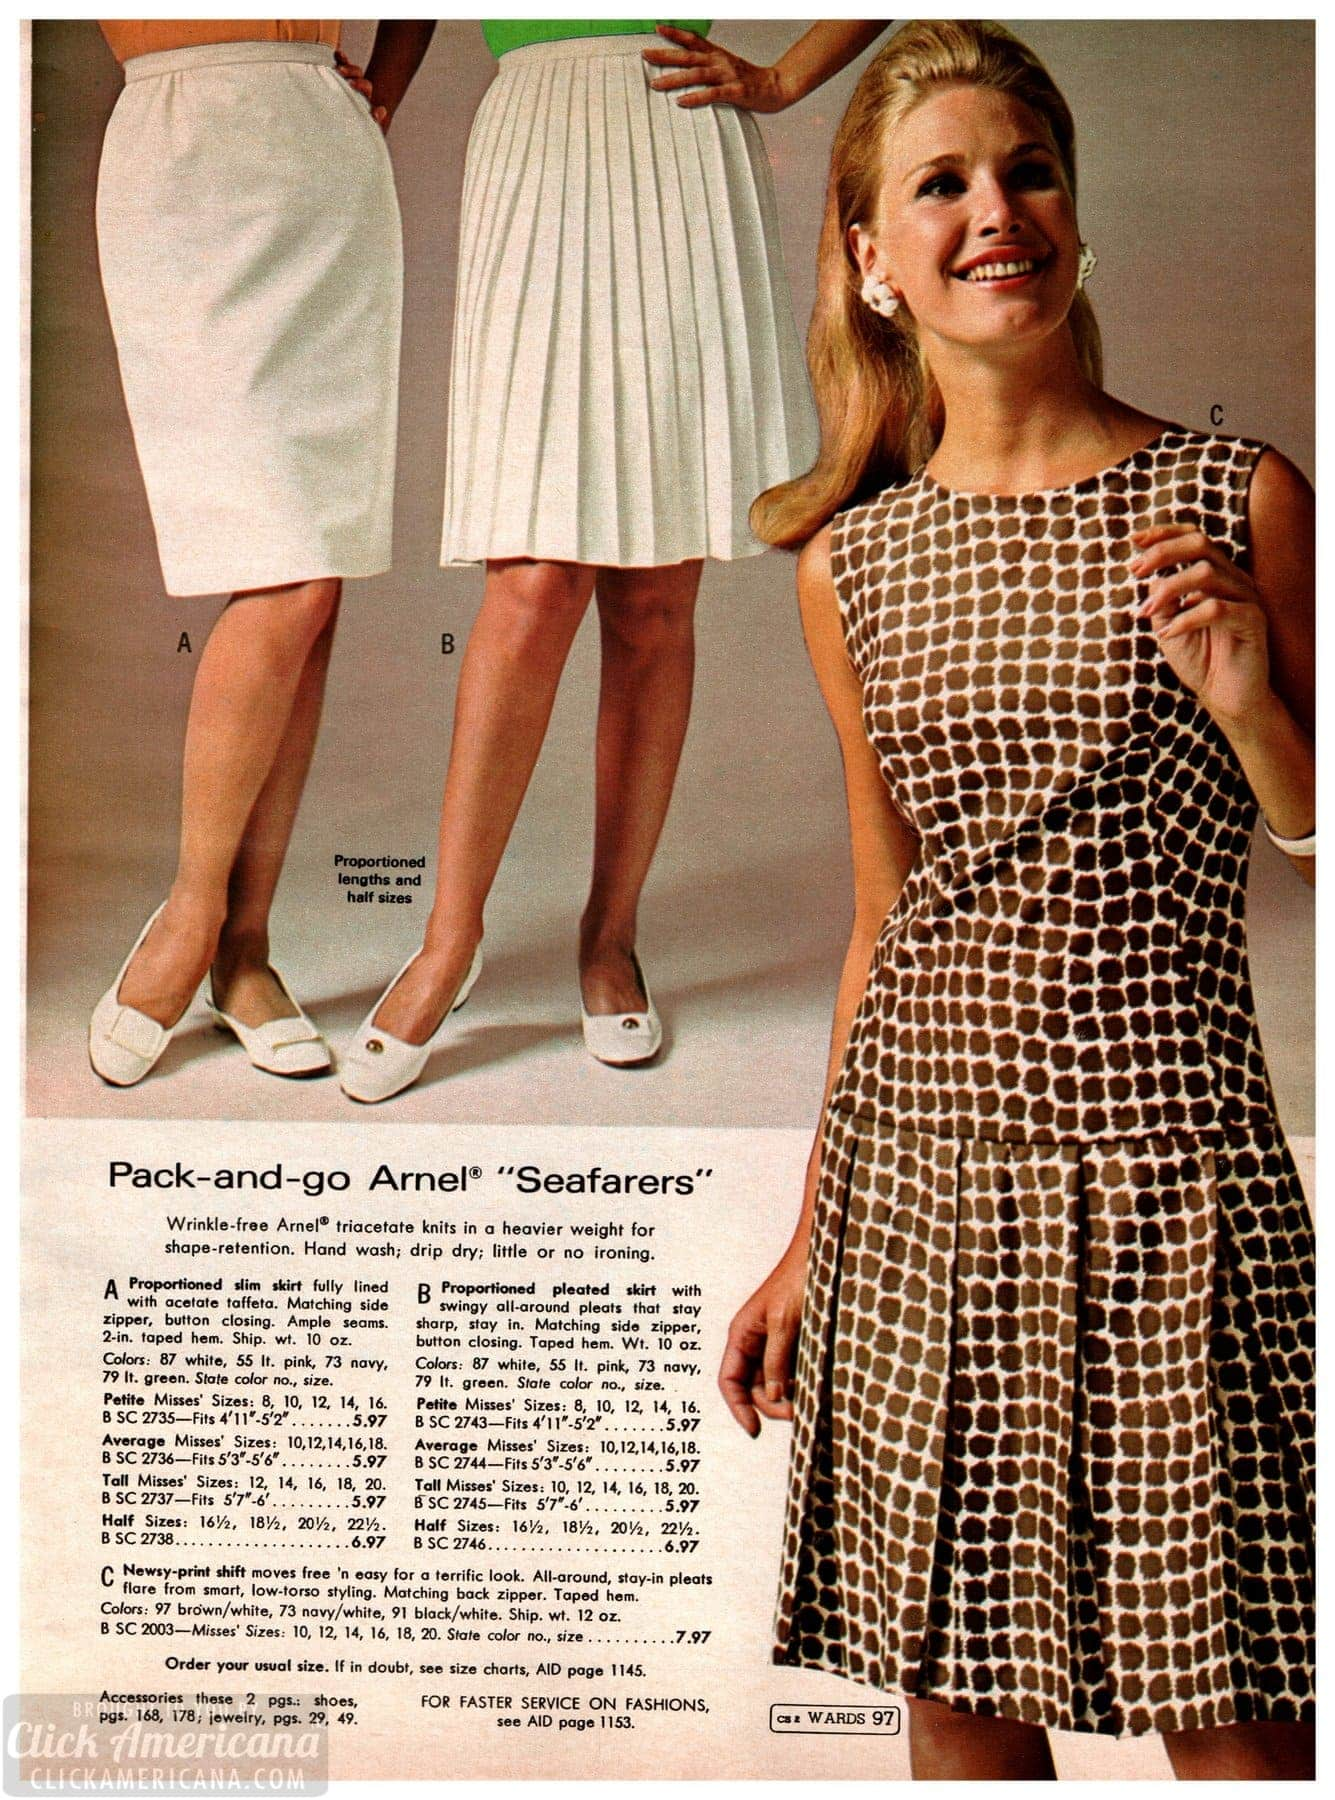 Classic Arnel skirts and dresses from Wards catalog 1968